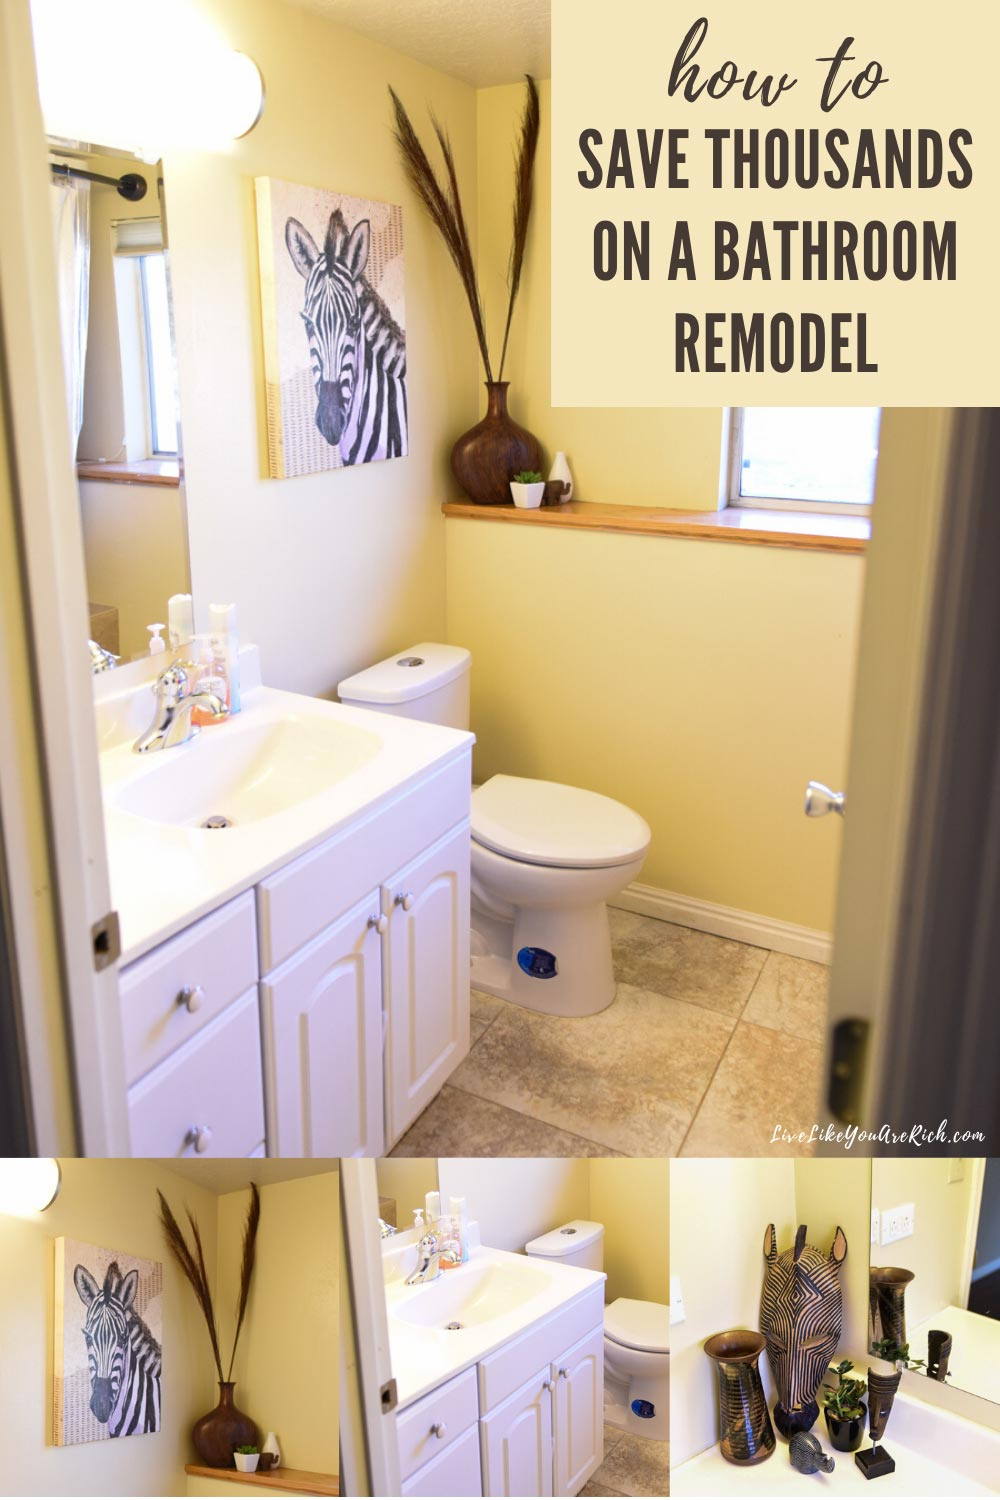 Here is the details on how this bathroom ending up costing 91% less than a typical bathroom remodel costs.  #bathroom #remodel #bathroommakeover